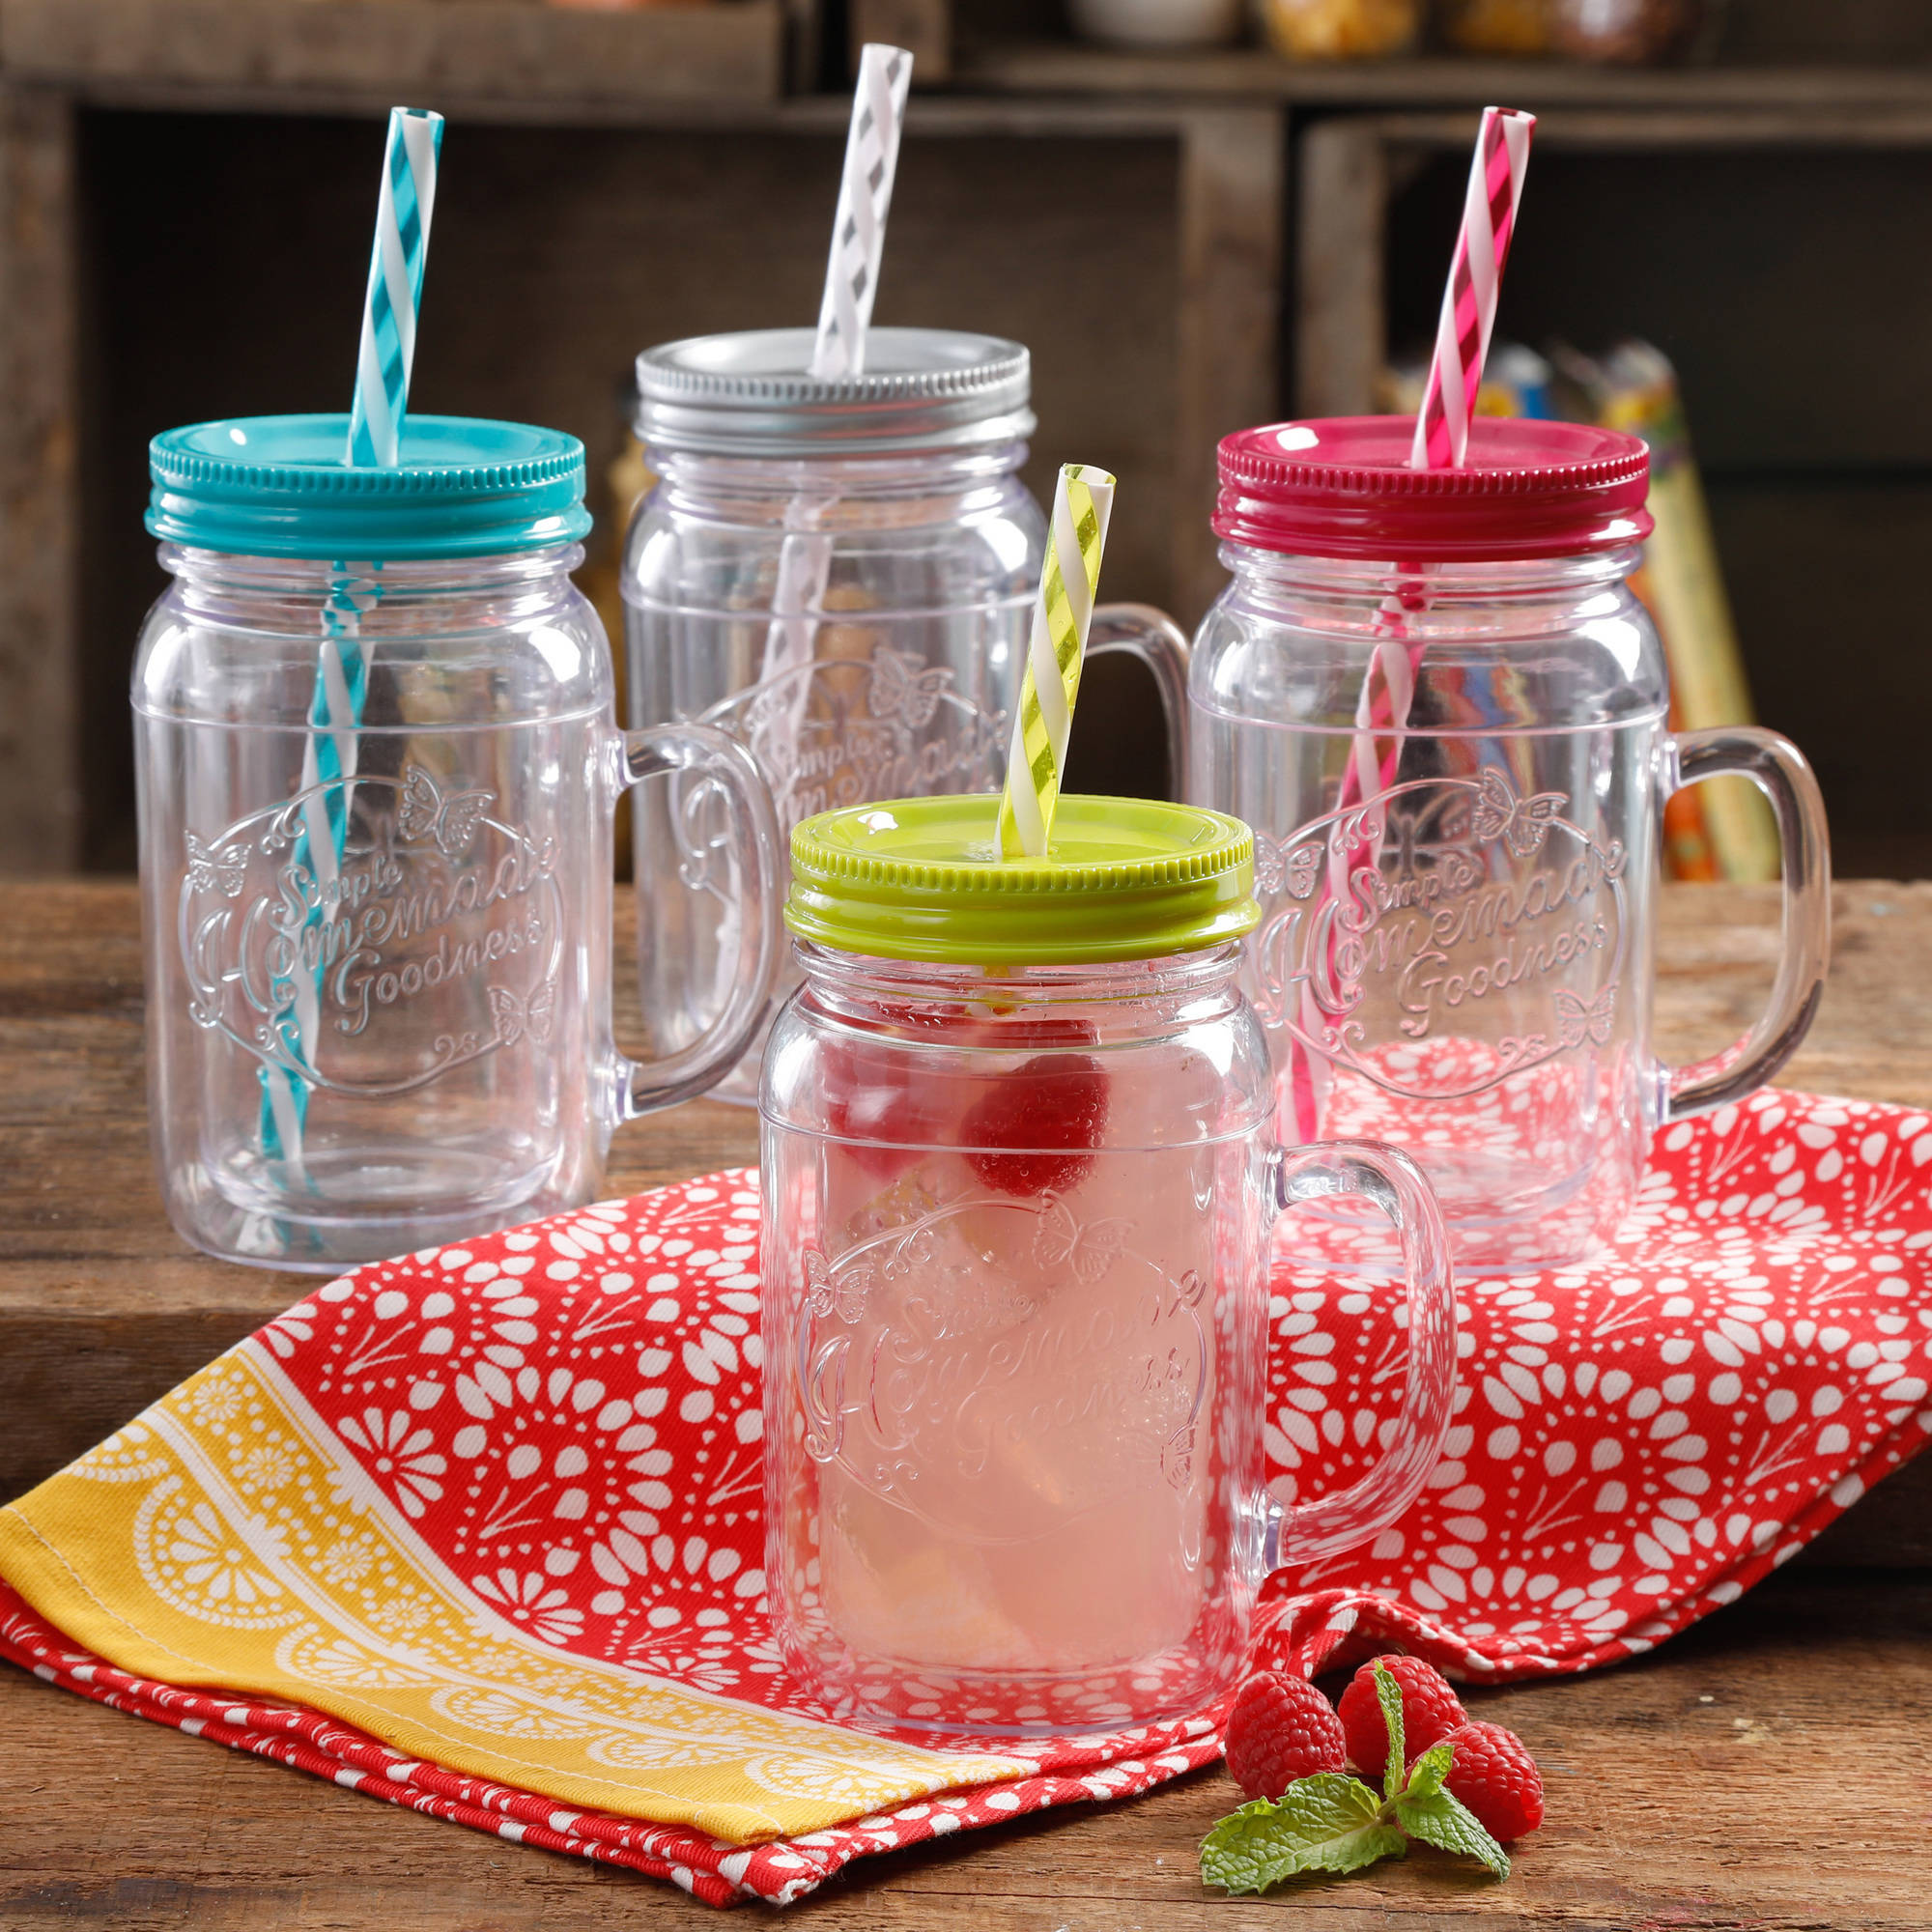 The Pioneer Woman Simple Homemade Goodness Assorted 16-Ounce Double-Wall Mason Jar with Lid and Handle, Set of 4